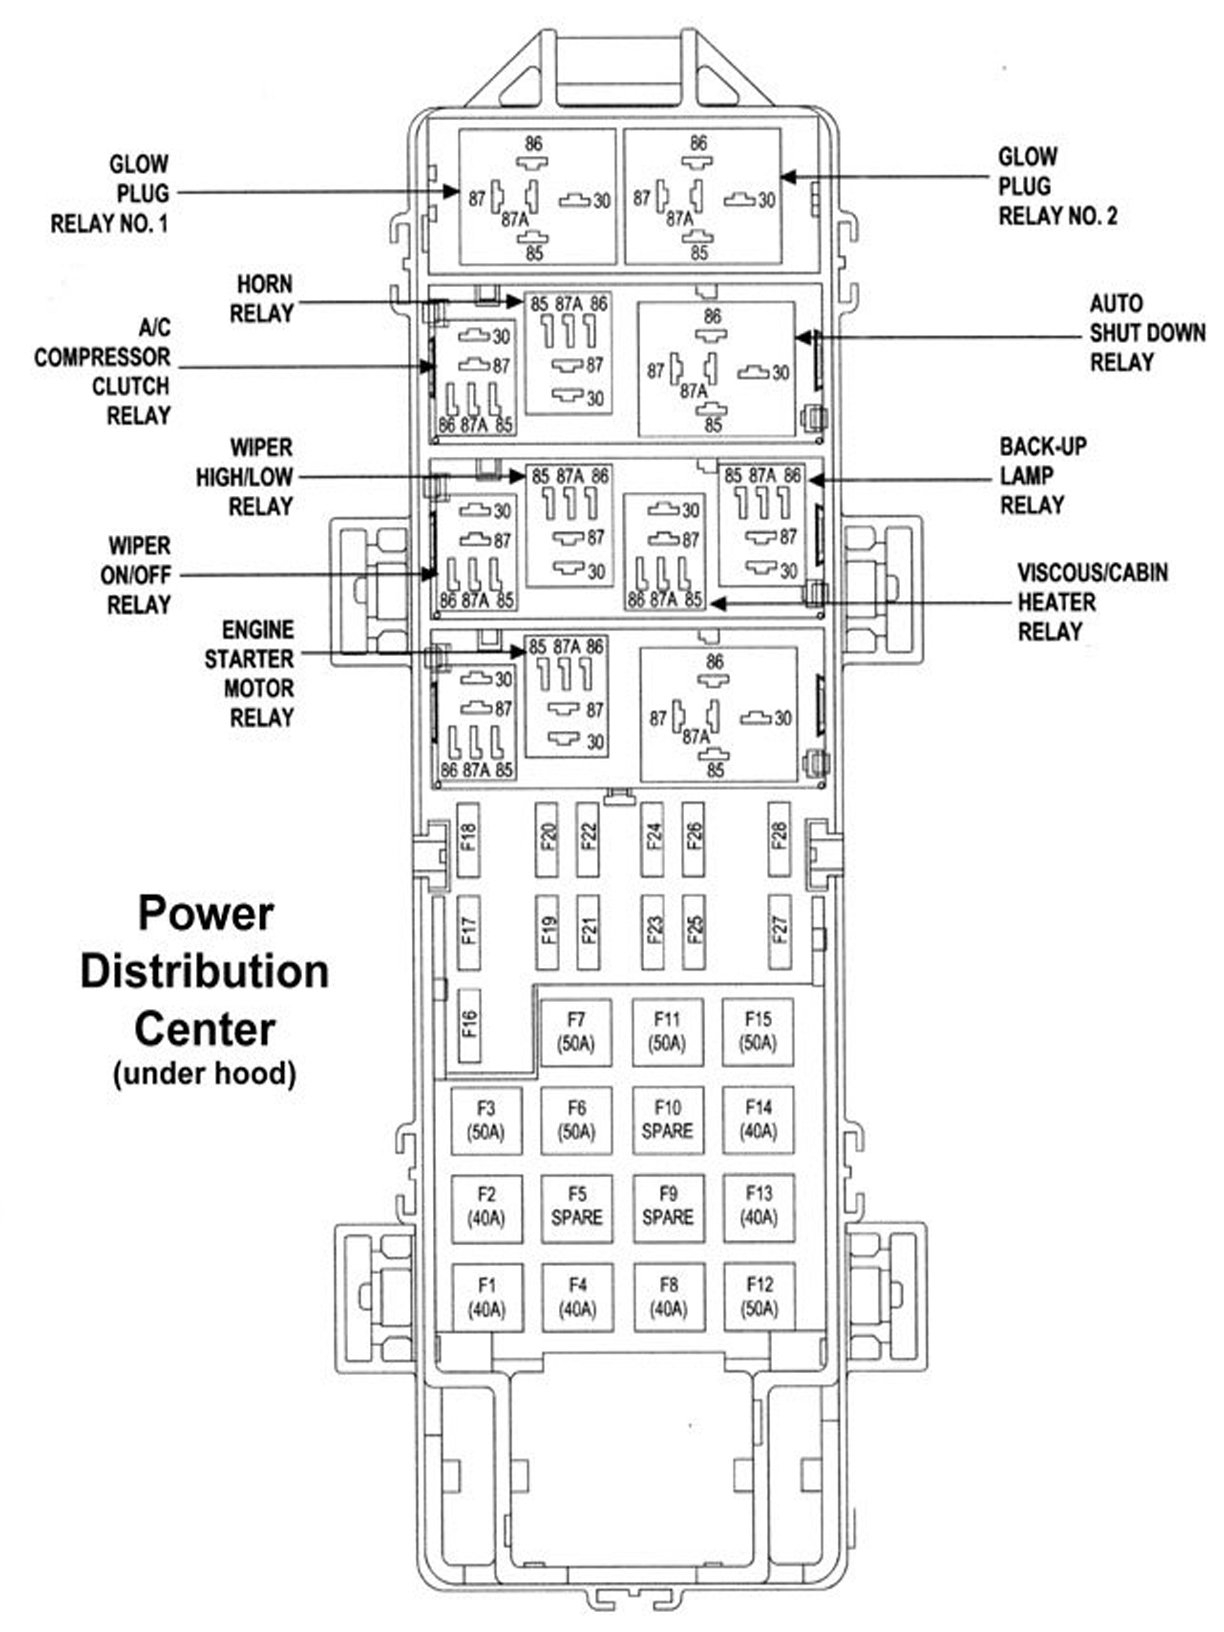 hl_9911] laredo fuse box map 1998 jeep grand cherokee schematic wiring  neph opogo emba mohammedshrine librar wiring 101